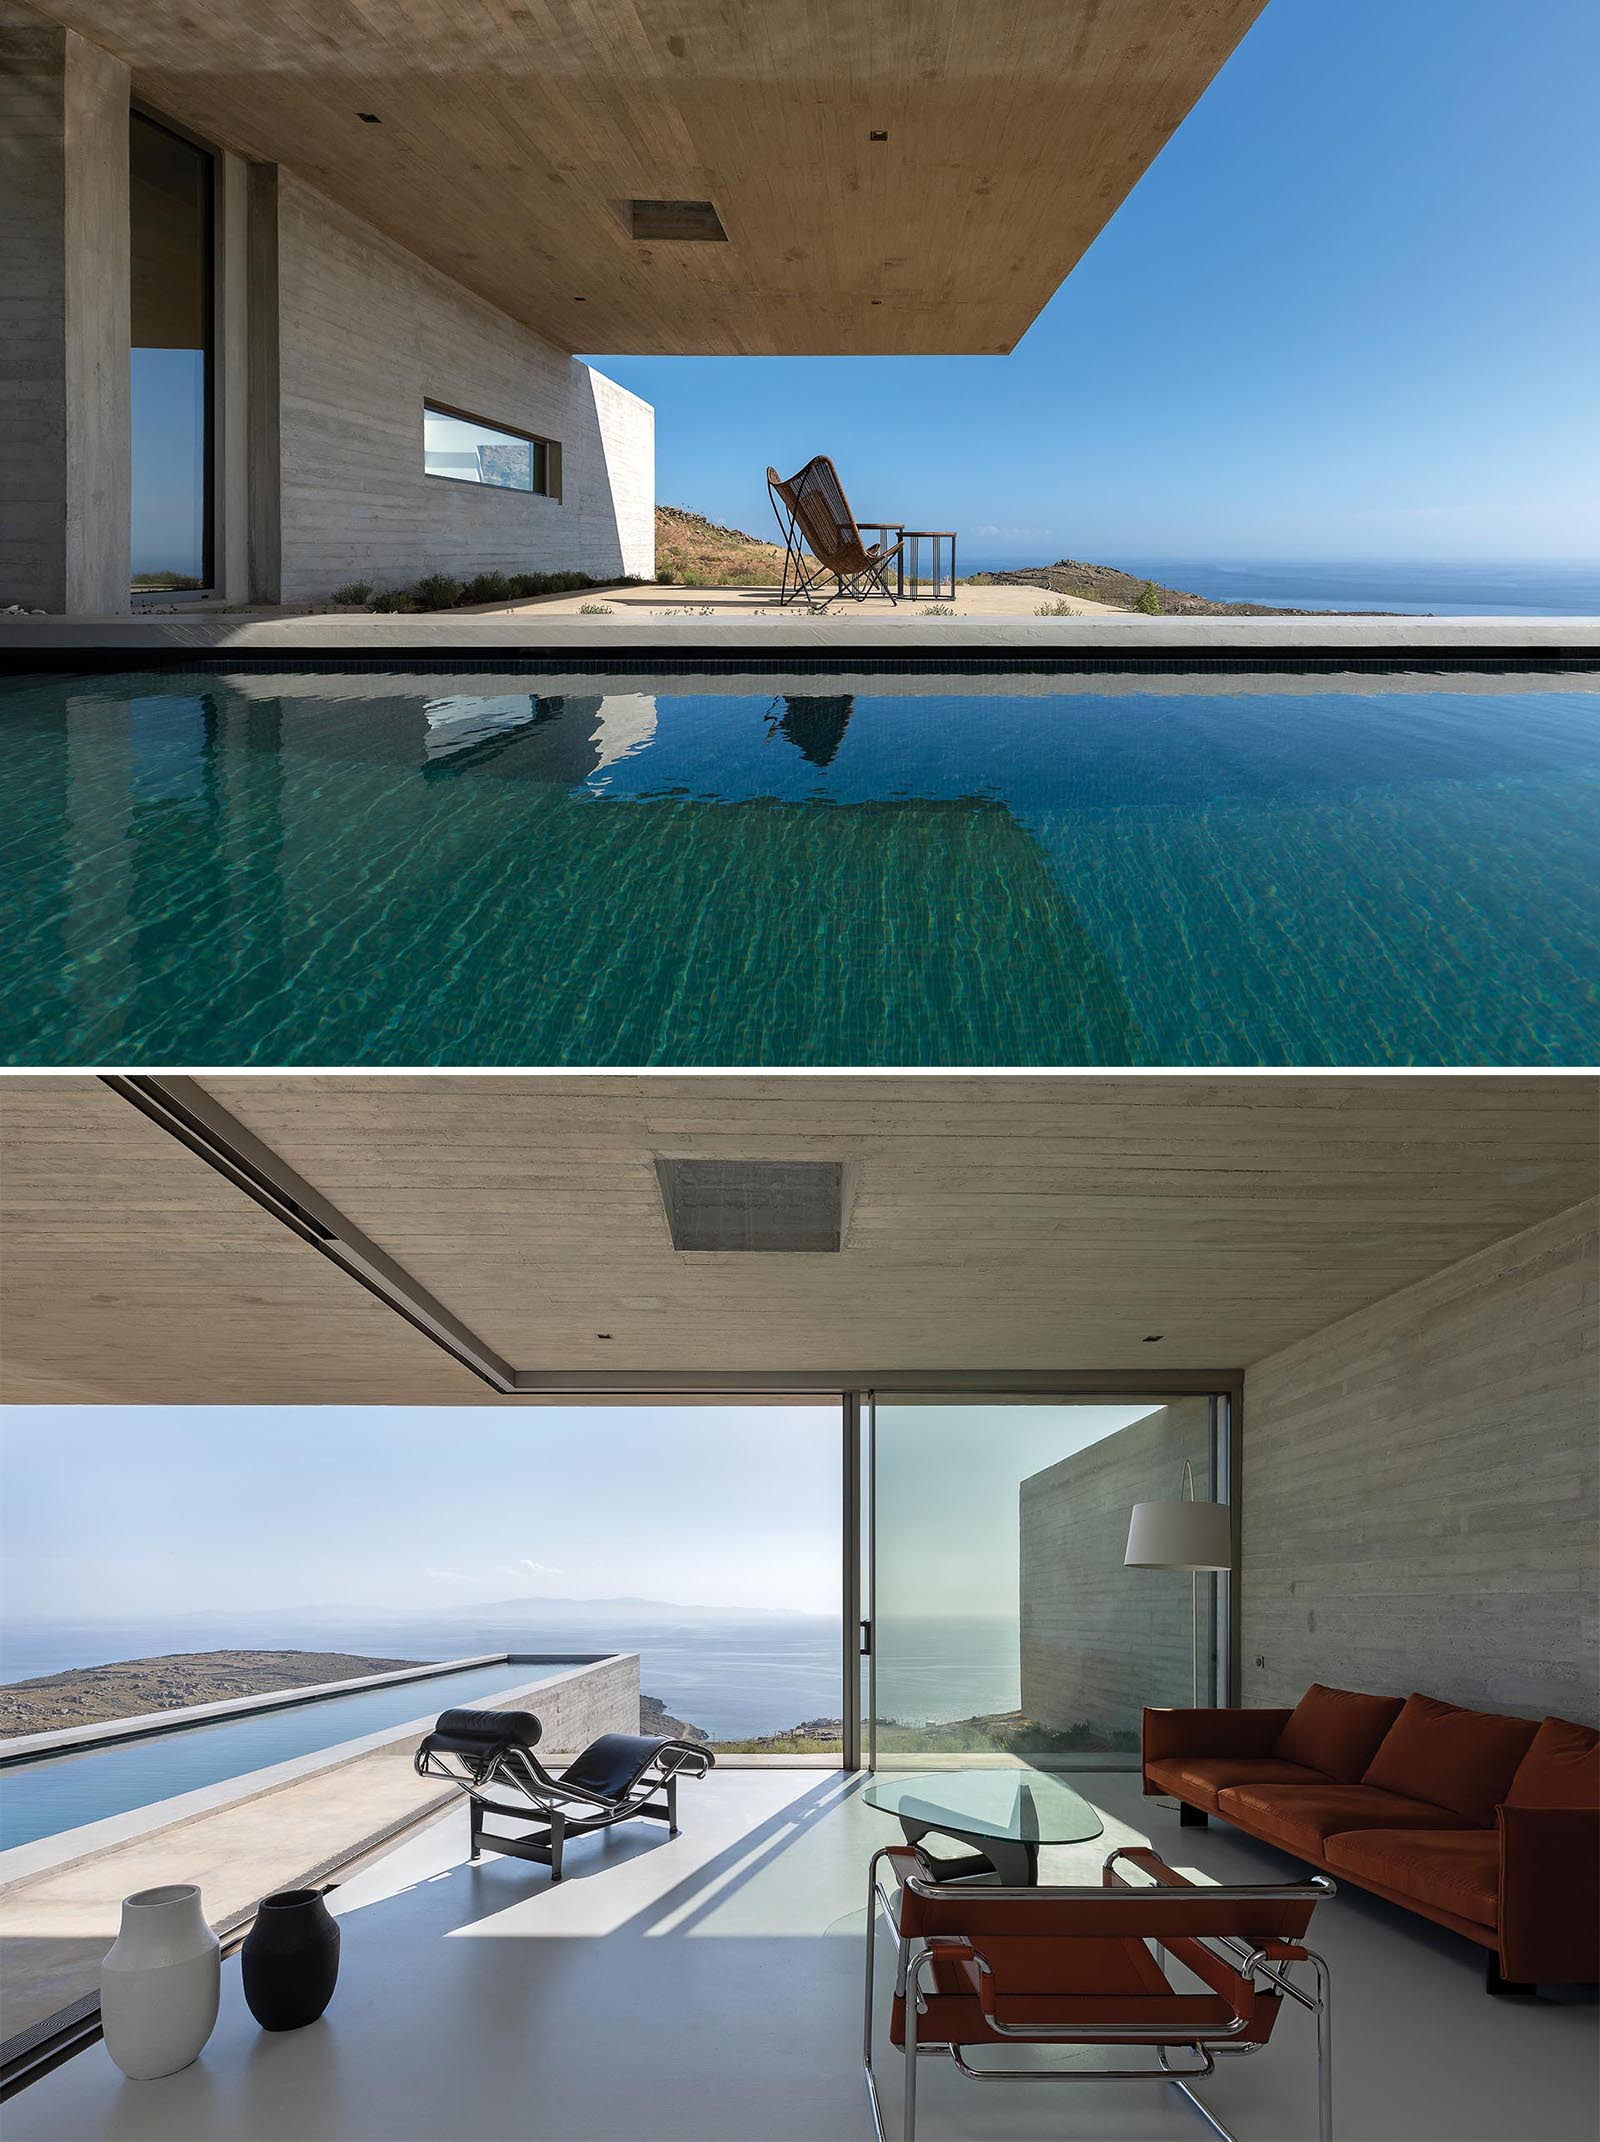 A modern concrete home with a living room that has sliding glass walls that open to the swimming pool.